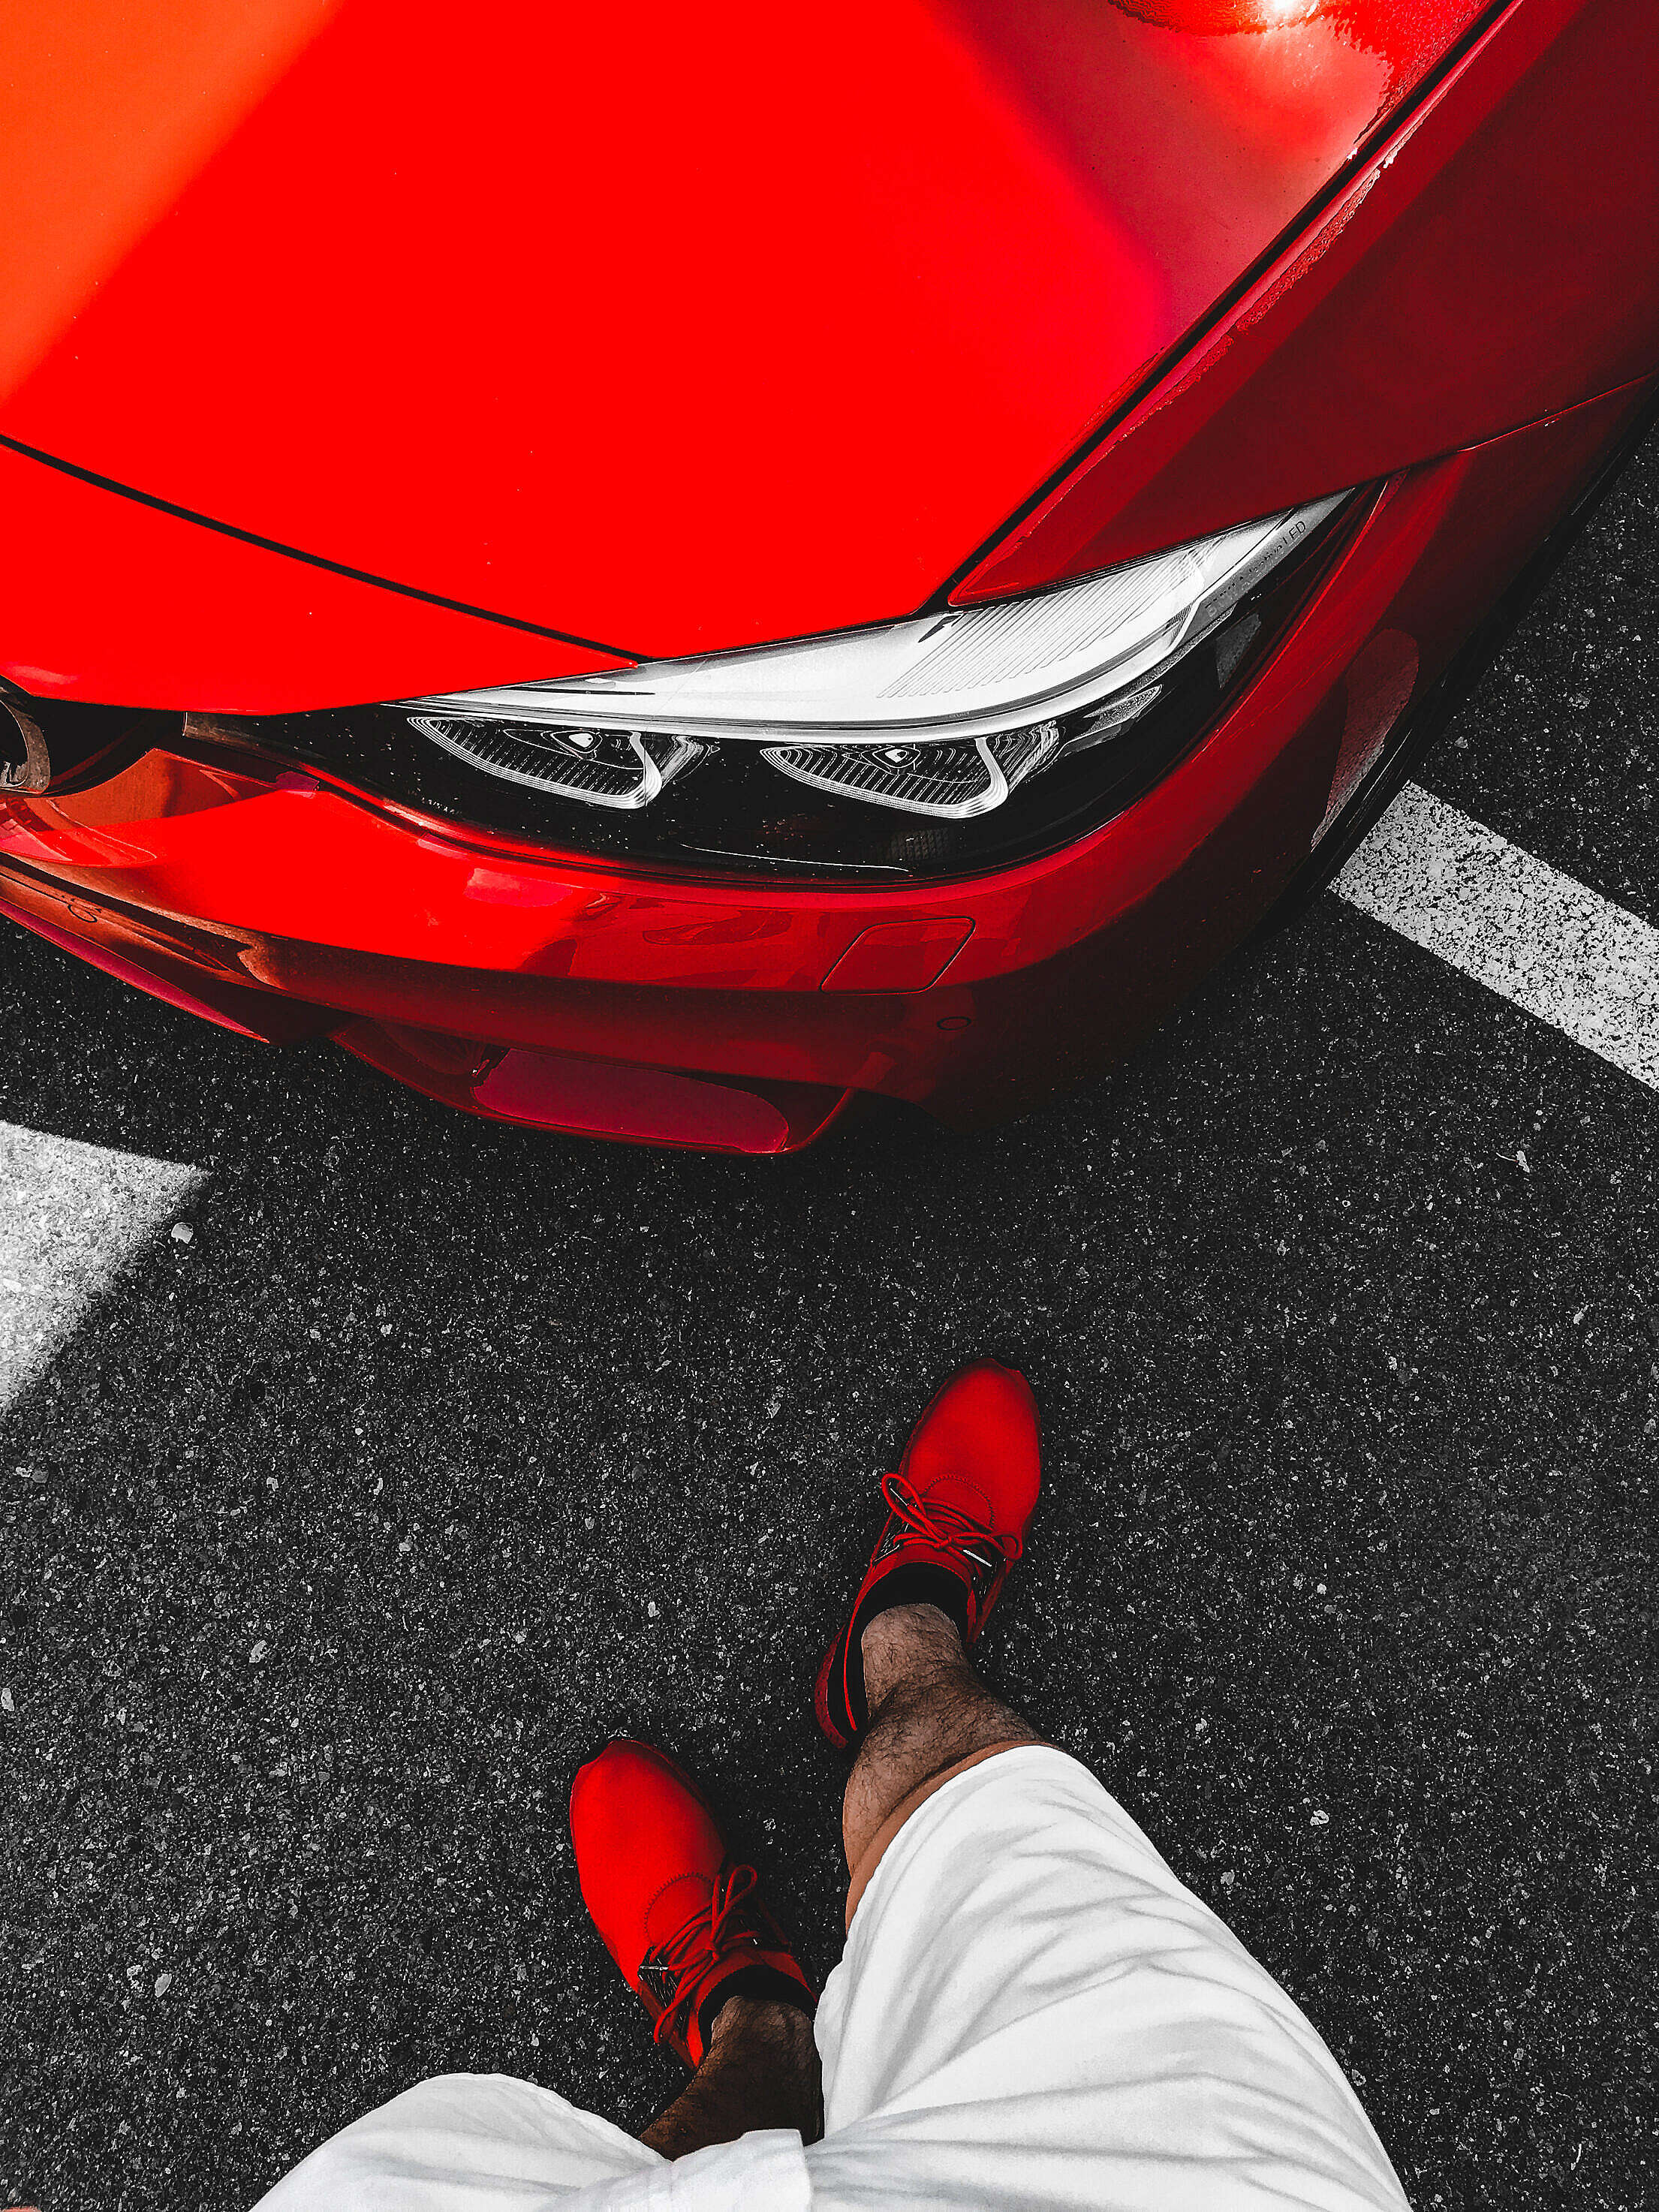 Man in Red Shoes Standing in Front of Ferrari-Red BMW Free Stock Photo